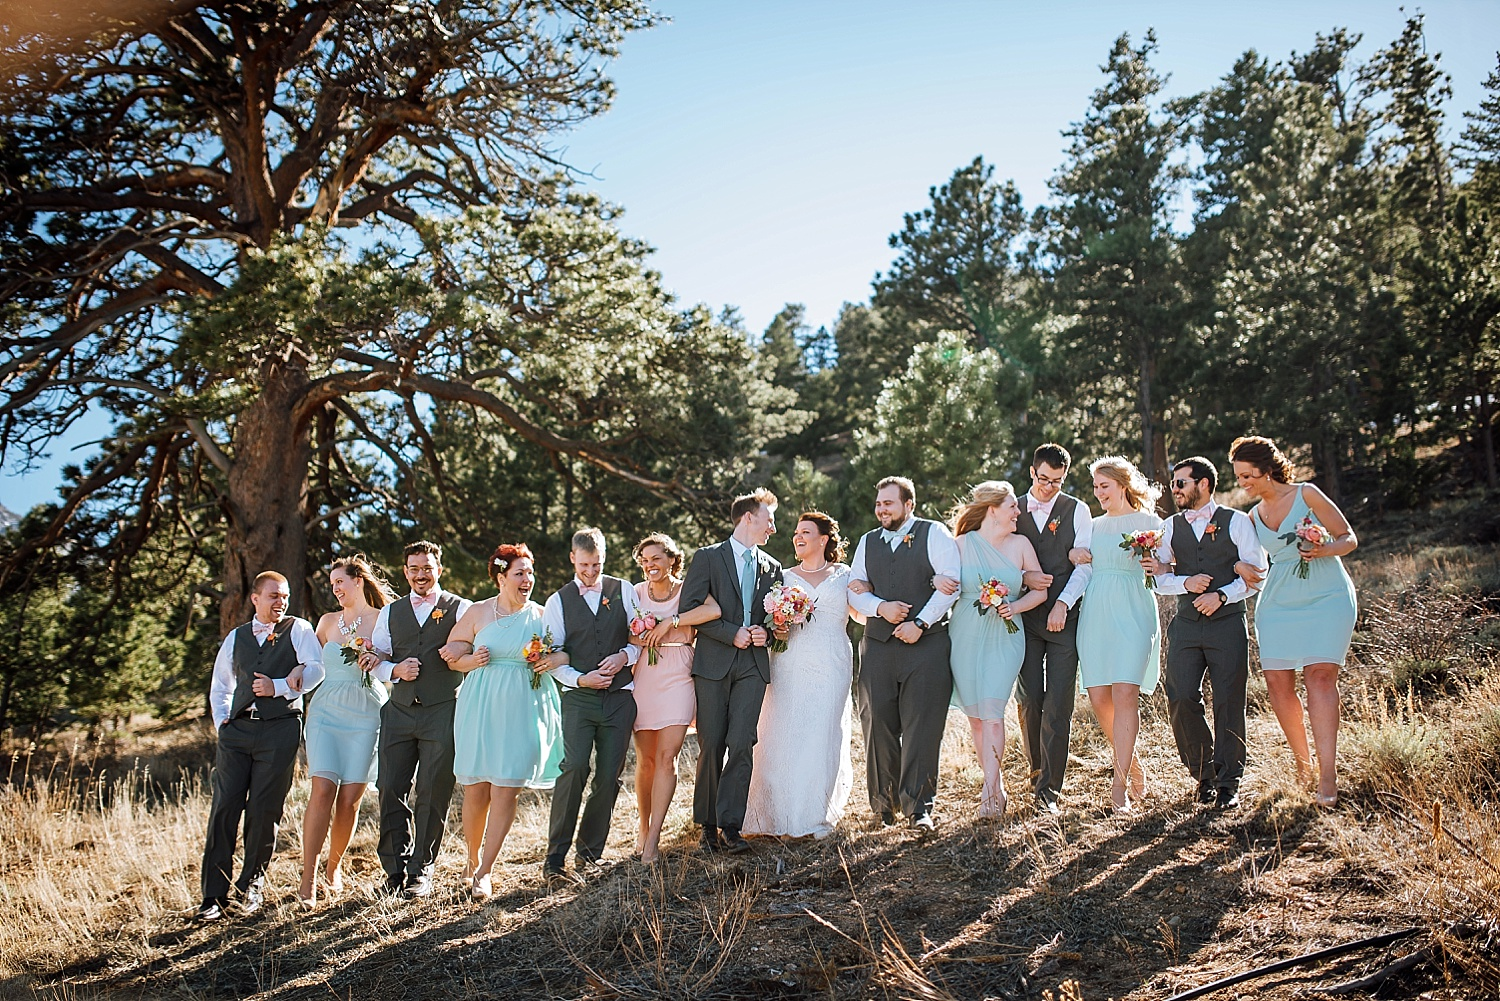 The blush and tiffany blue color scheme is perfect for a large wedding party and mountain wedding! Mary's Lake Lodge up in Estes Park is such a beautiful wedding venue! Photo by Maddie Mae Photography